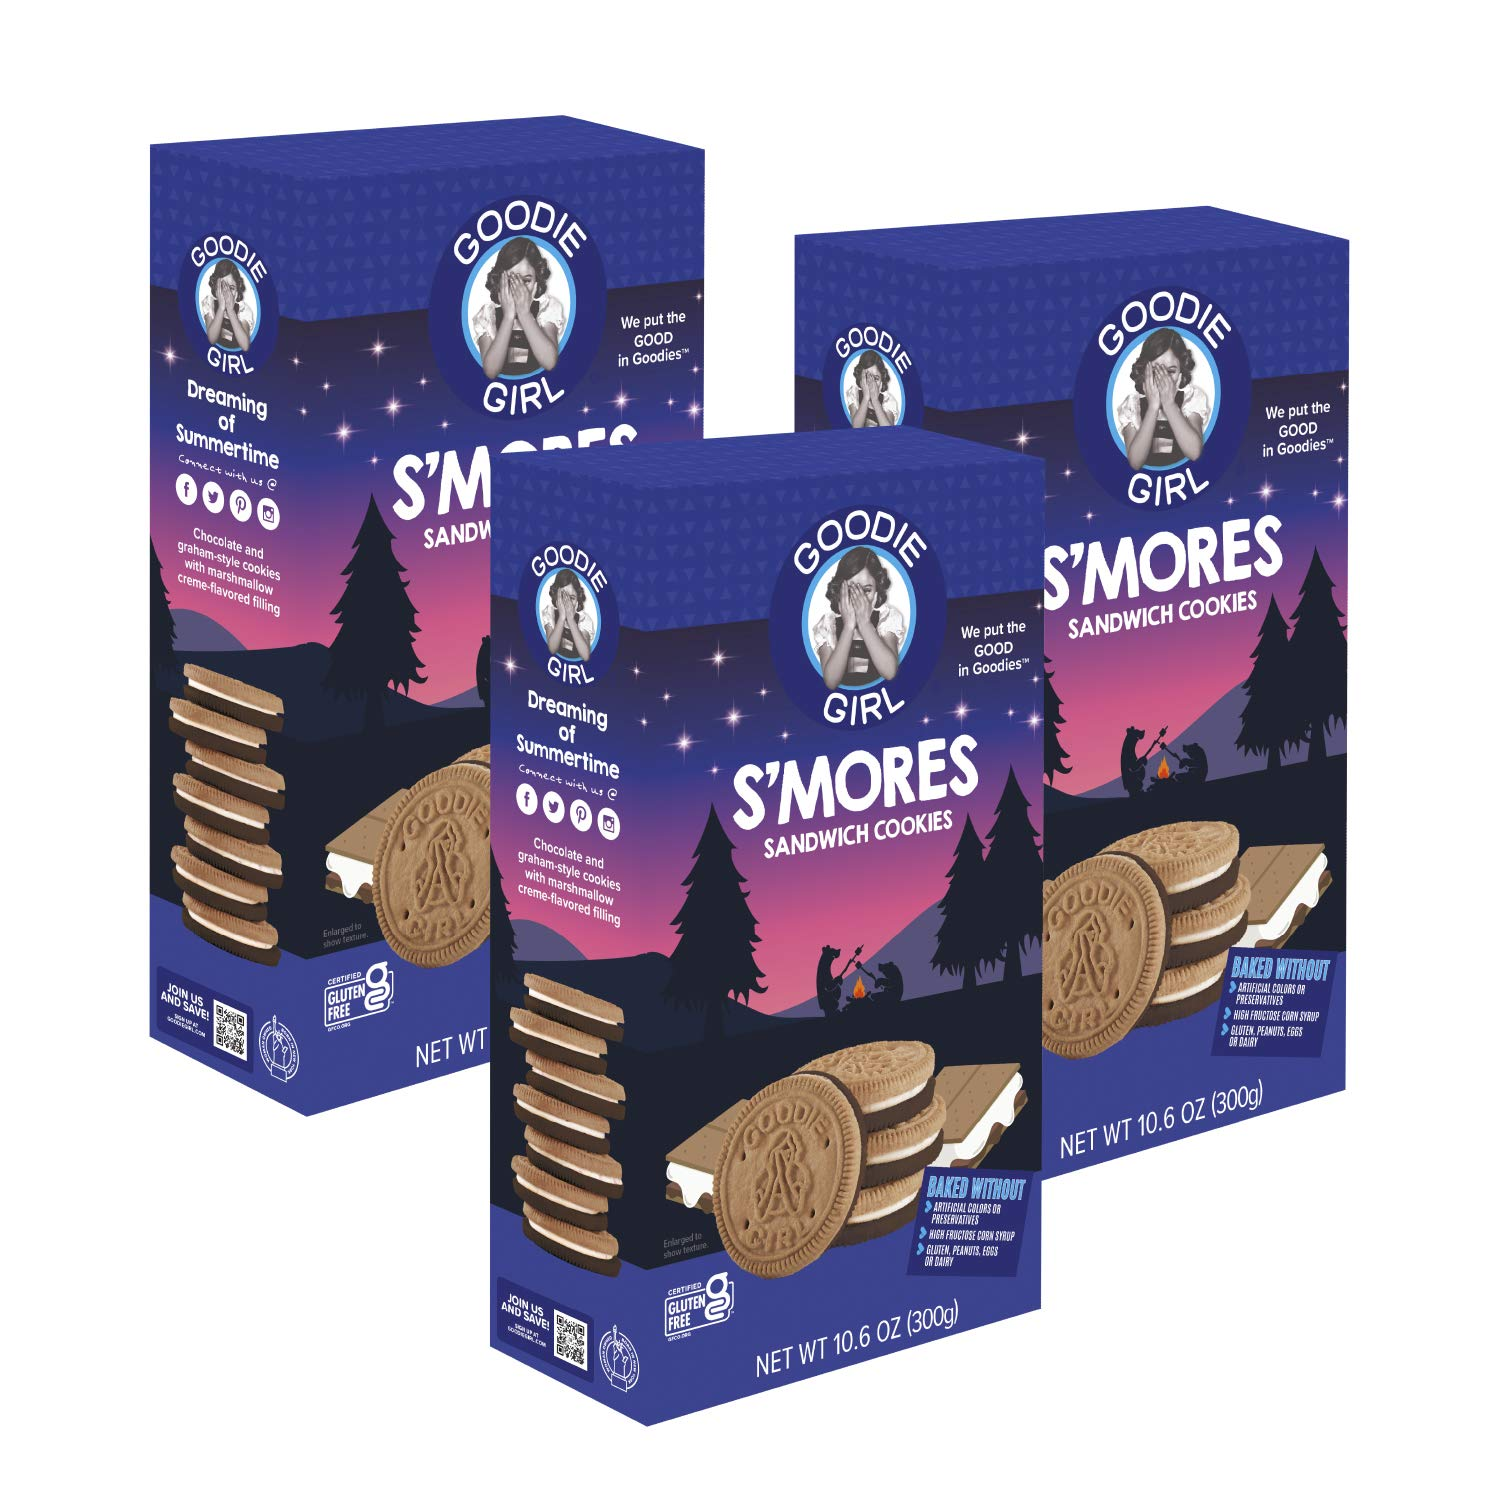 Goodie Girl, Smores Sandwich Cookies | Gluten Free | Peanut Free | Egg Free | Dairy Free | Vegan | No High Fructose Corn Syrup | Kosher (10.6oz, Pack of 3)